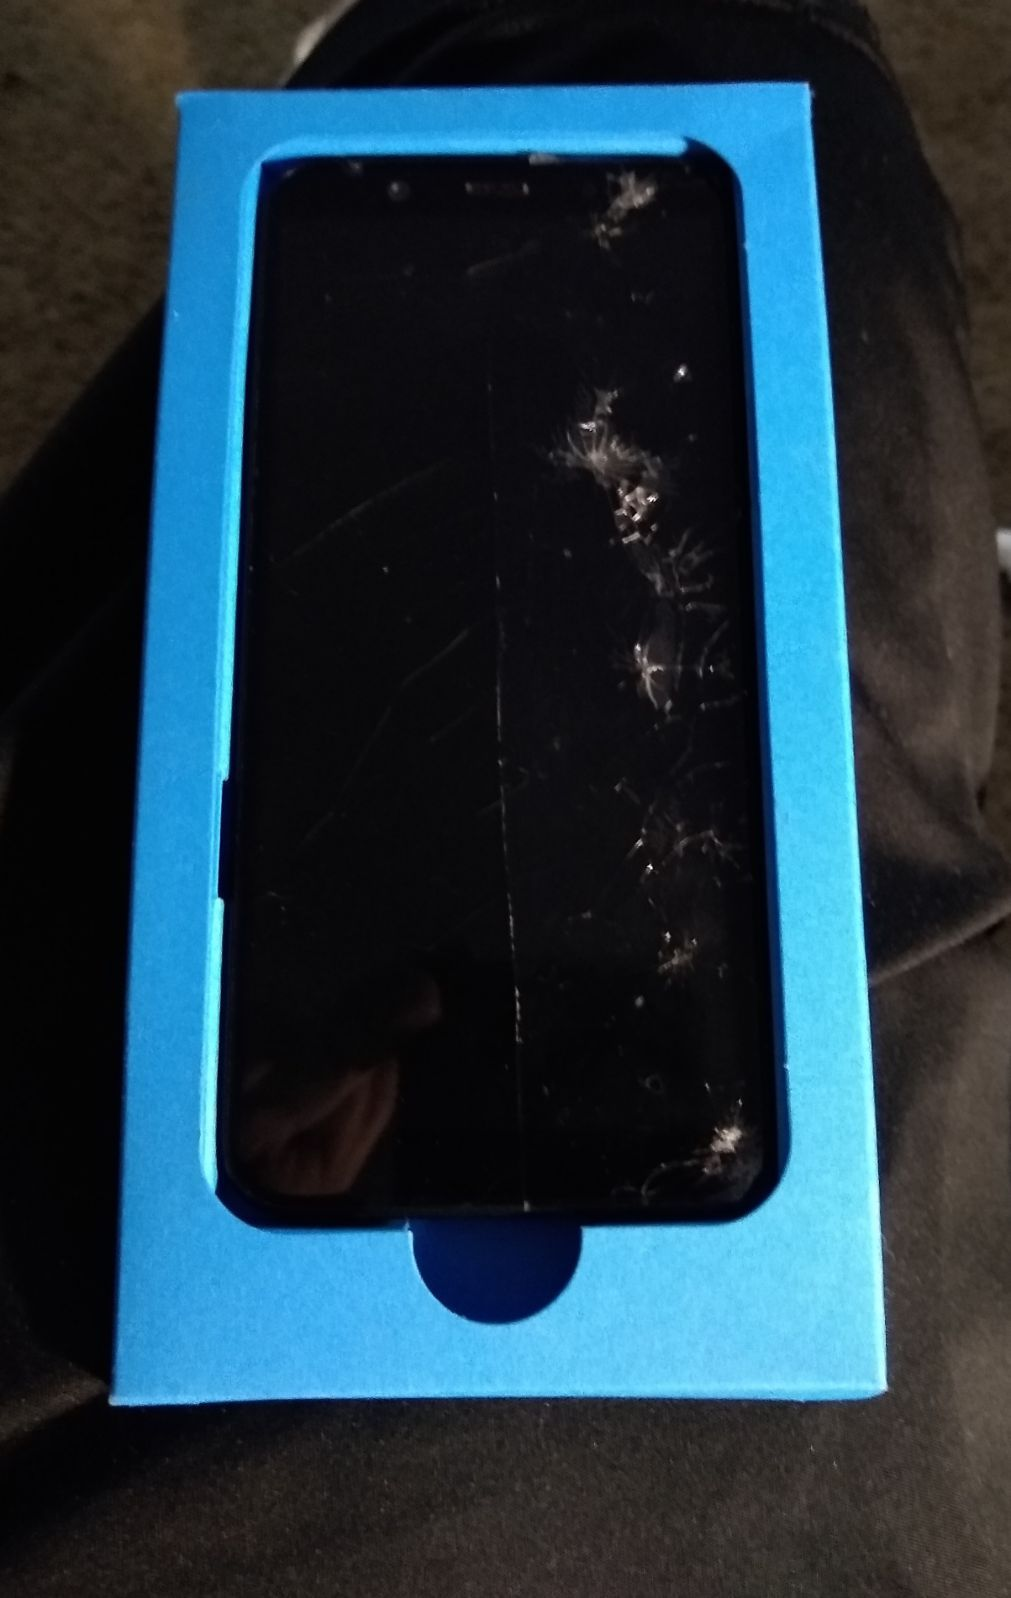 Samsung A6 with a cracked screen small side cracked but it